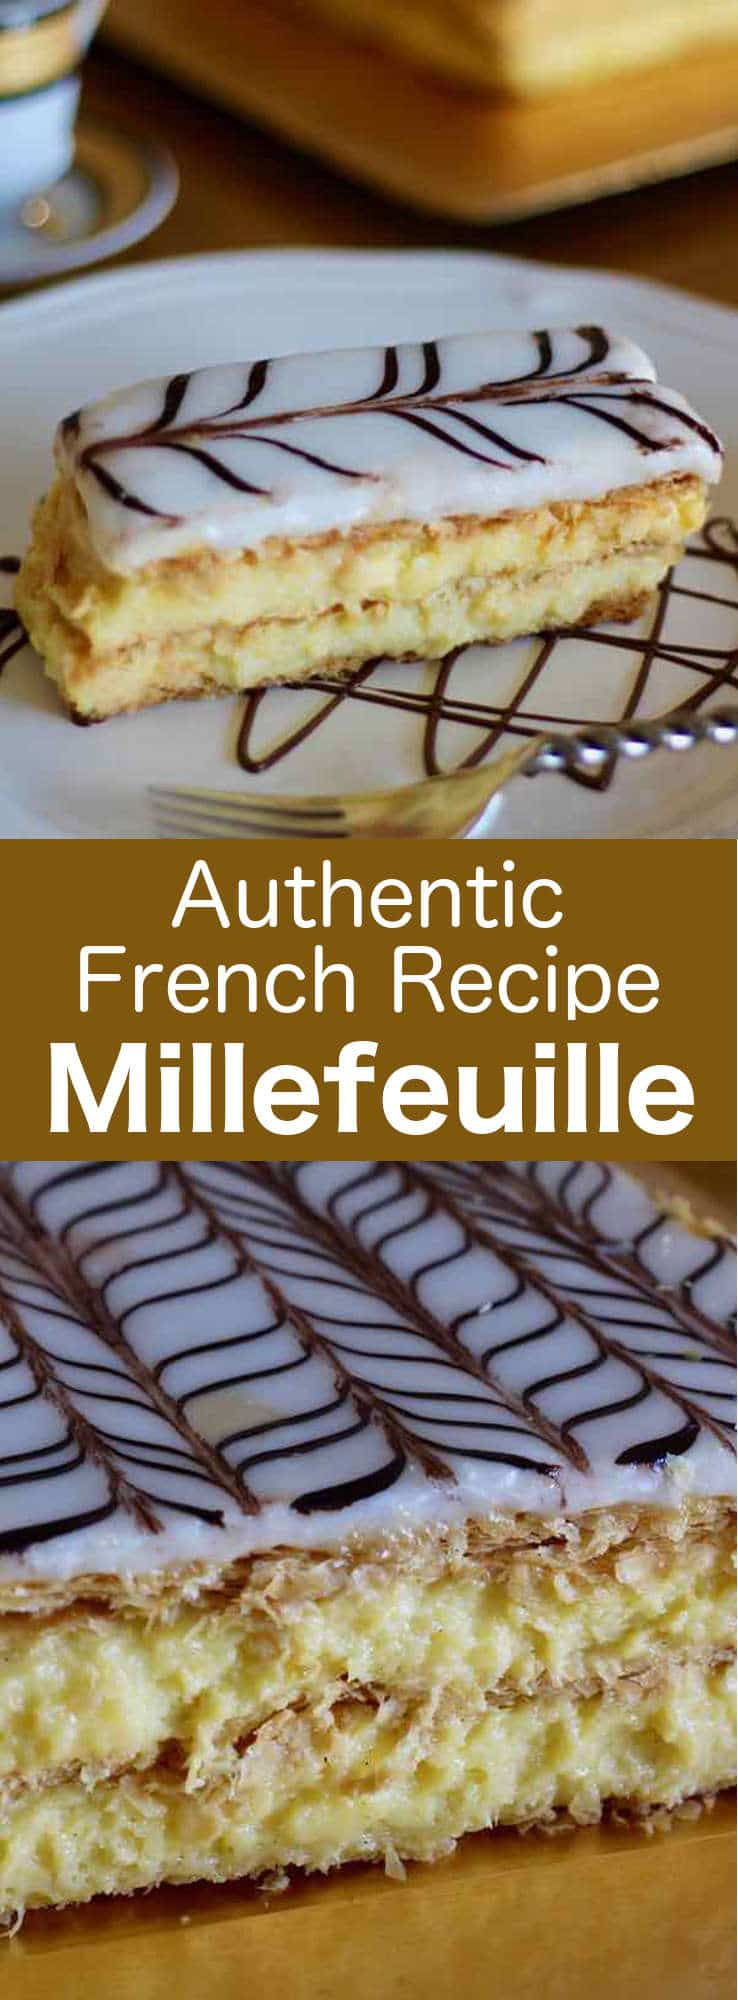 Millefeuille is a French pastry prepared with 3 layers of puff pastry and 2 layers of pastry cream, and that is covered with icing sugar or fondant. #French #pastry #196flavors